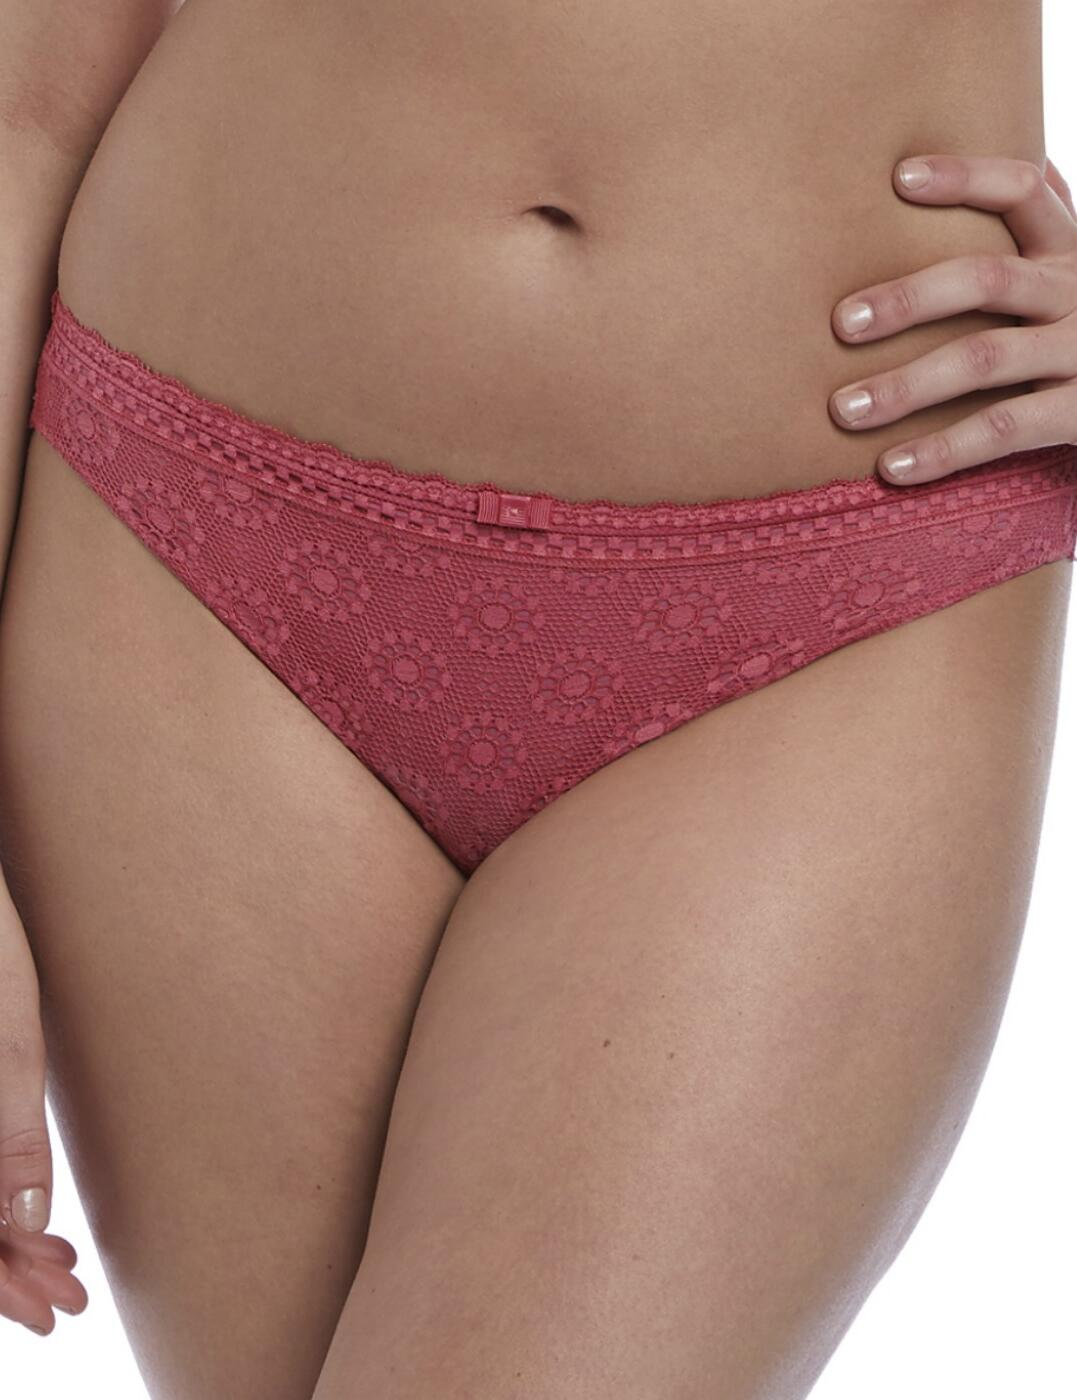 Details about  /Freya Love Note Brief 5215 New Lingerie Womens Knickers